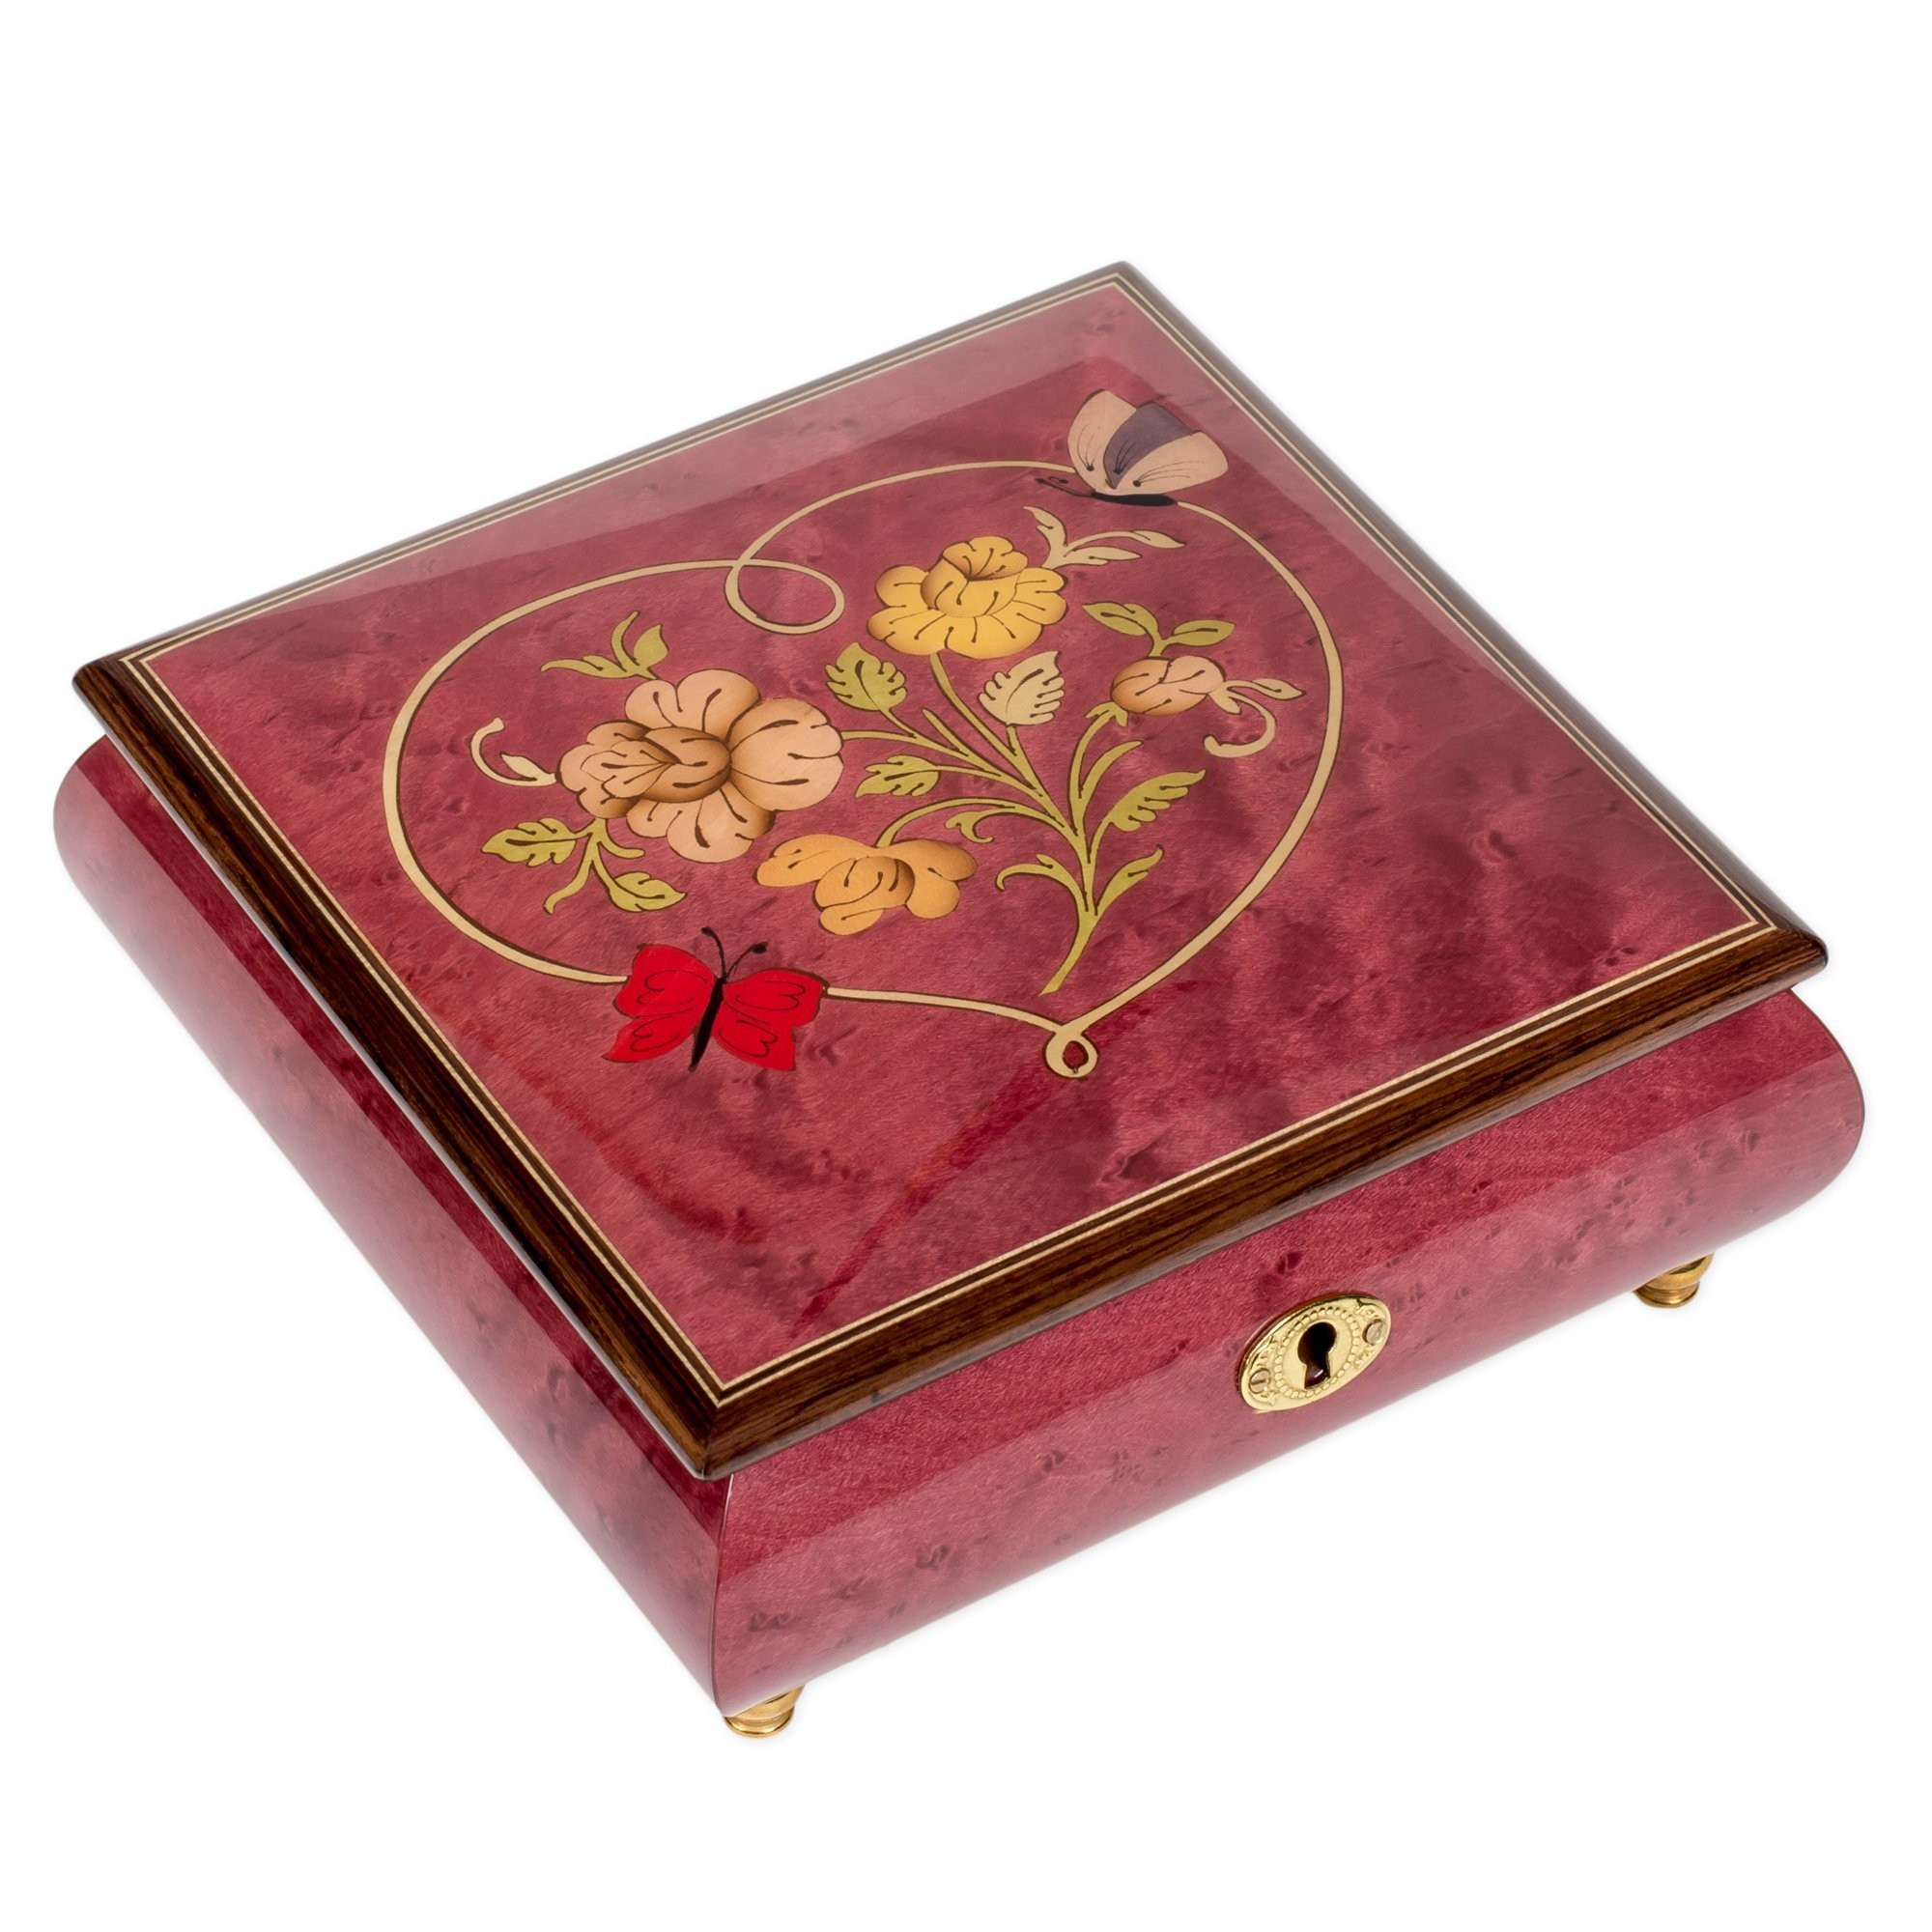 Butterfly Heart Italian Inlaid Wood Jewelry Music Box Plays Let Me Call You Sweetheart by Splendid Music Box Co.